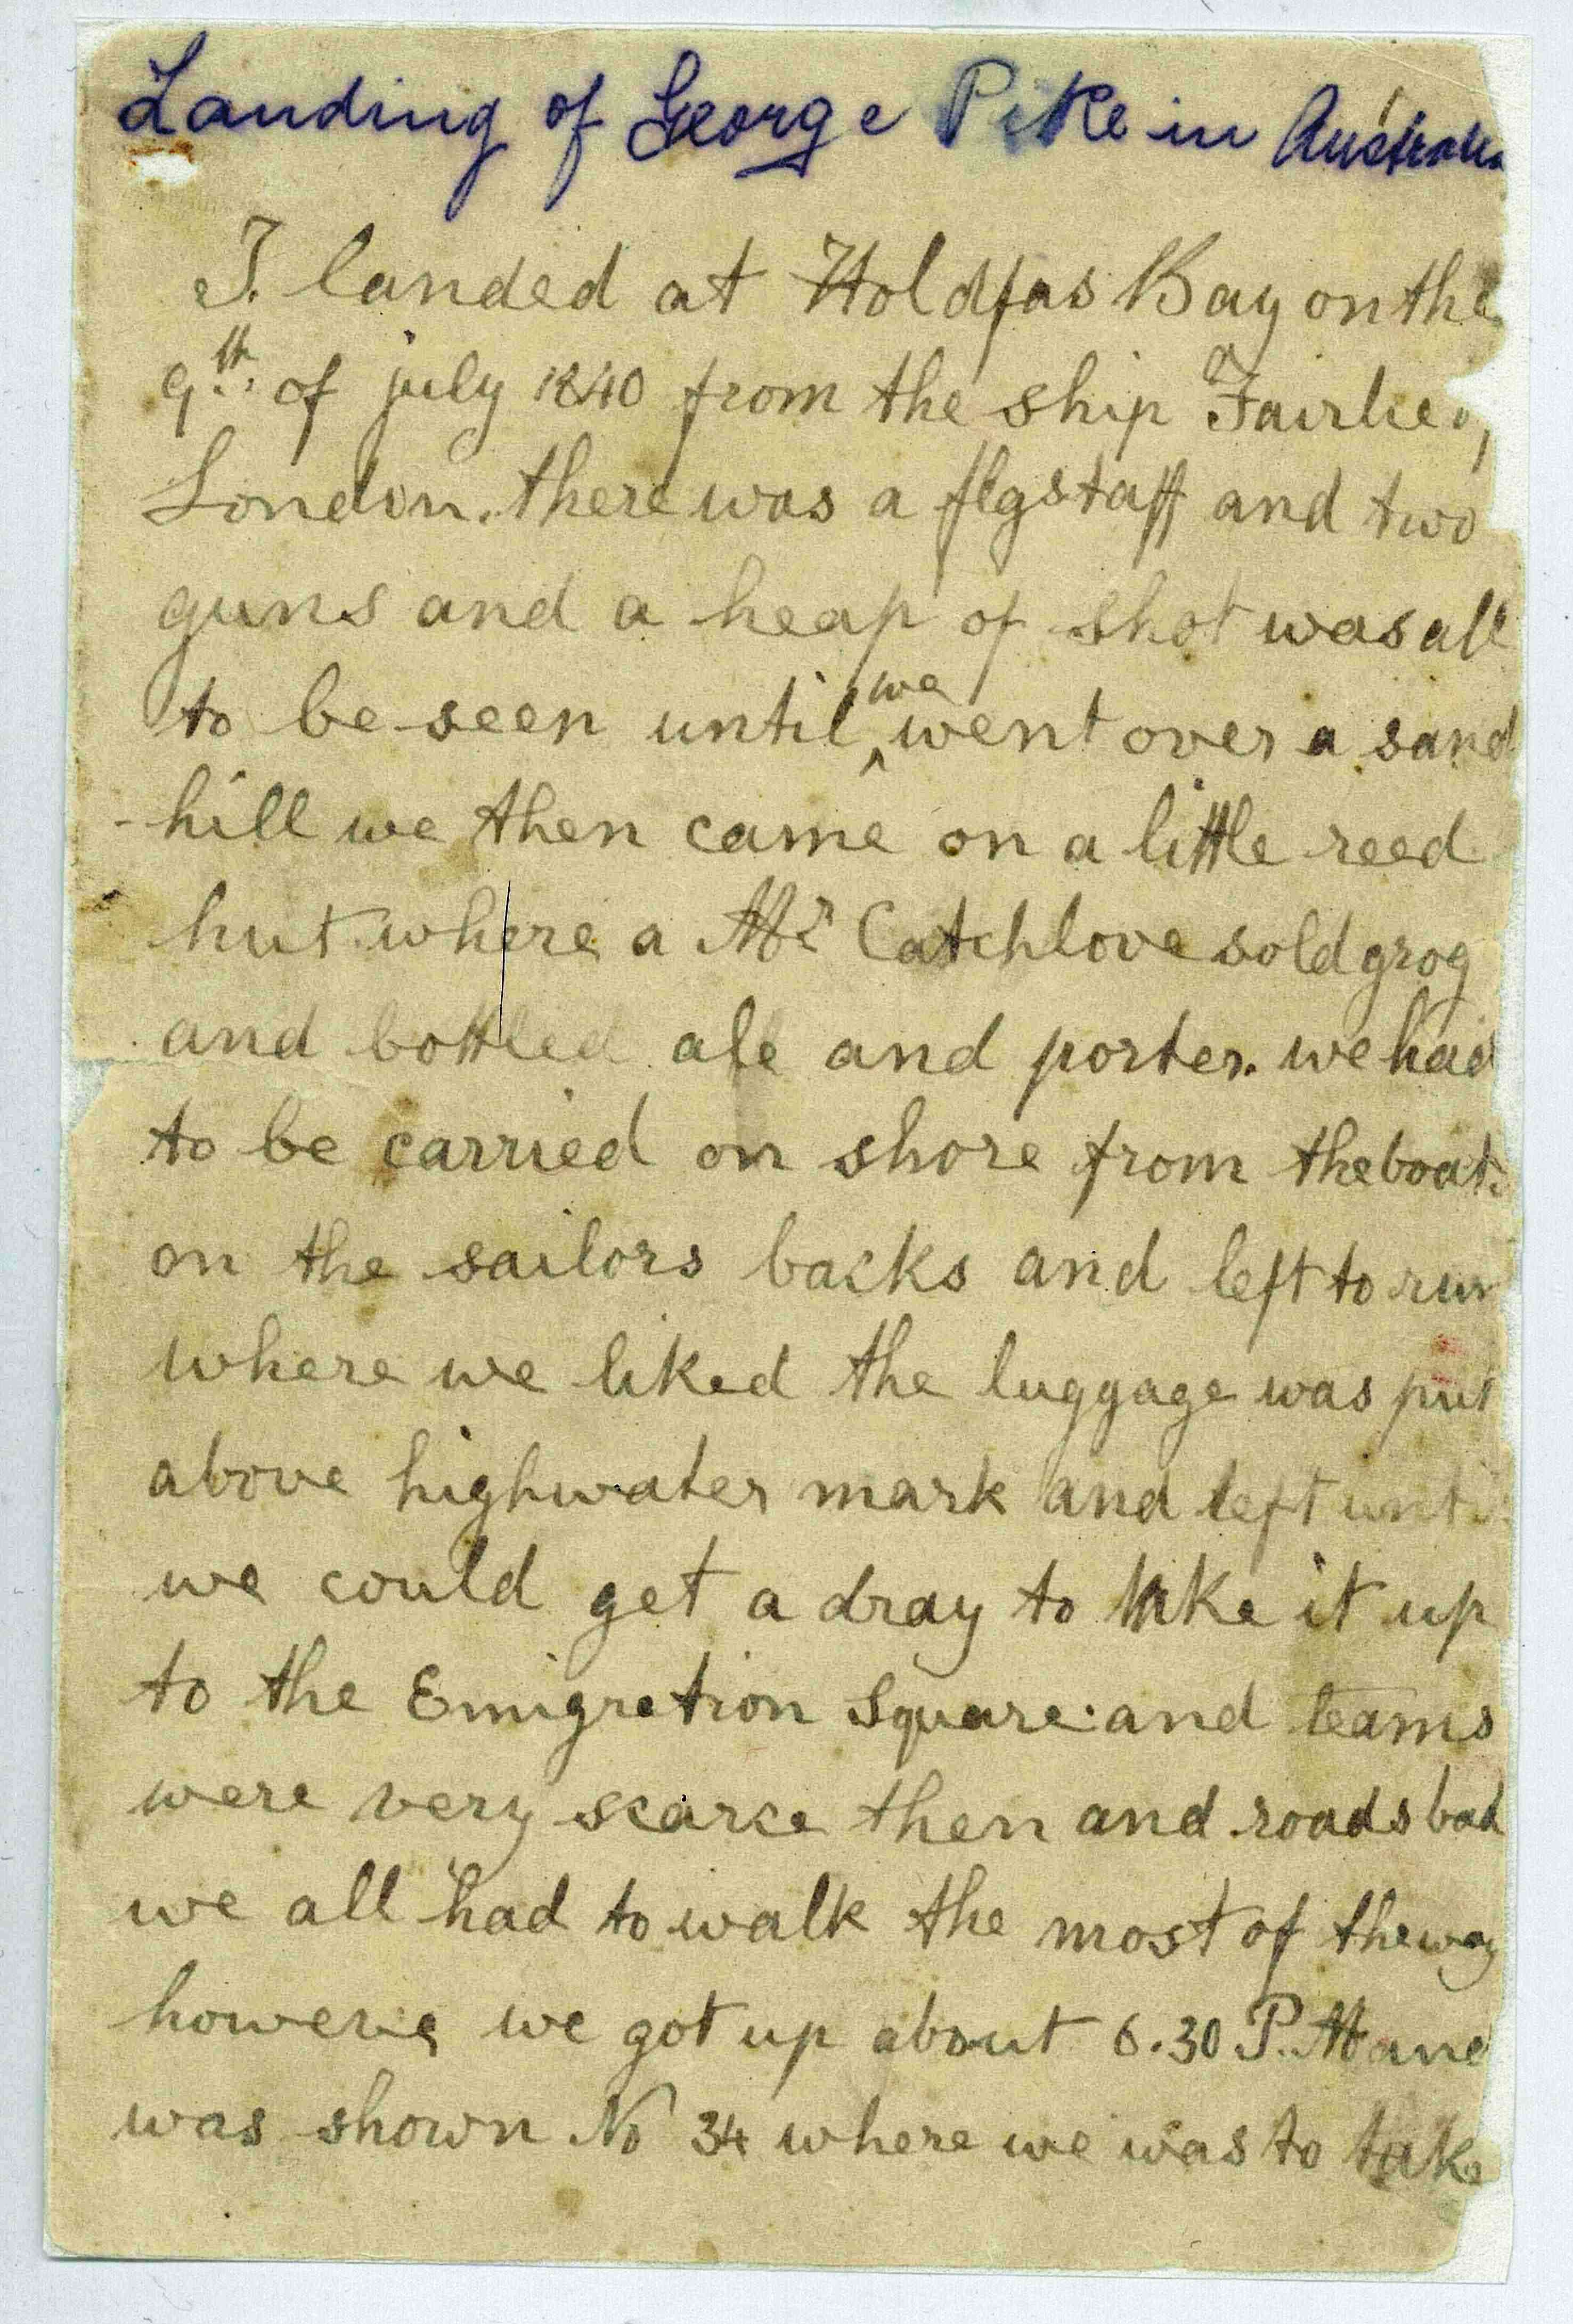 First Page Of 13 Year Old George Pikes Diary His Arrival At Holdfast Bay Glenelg On The Ship Fairlie In 1840 D 6769